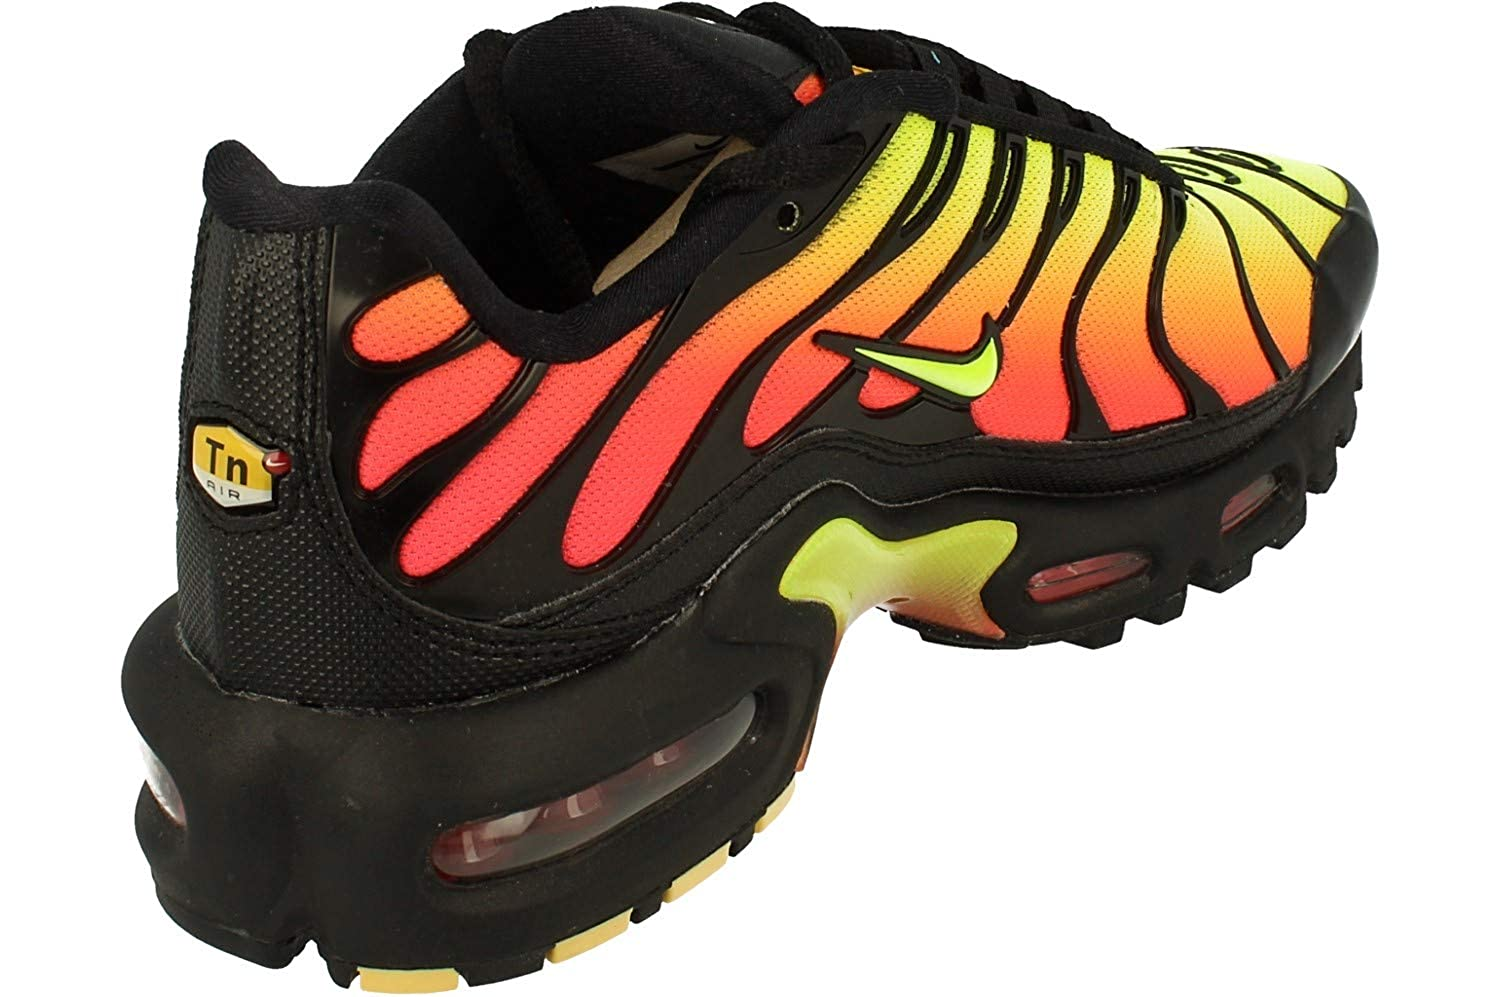 huge discount e96b3 ee1b8 Nike Womens Air Max Plus Tn Se Running Trainers Aq9979 Sneakers Shoes  Amazon.co.uk Shoes  Bags